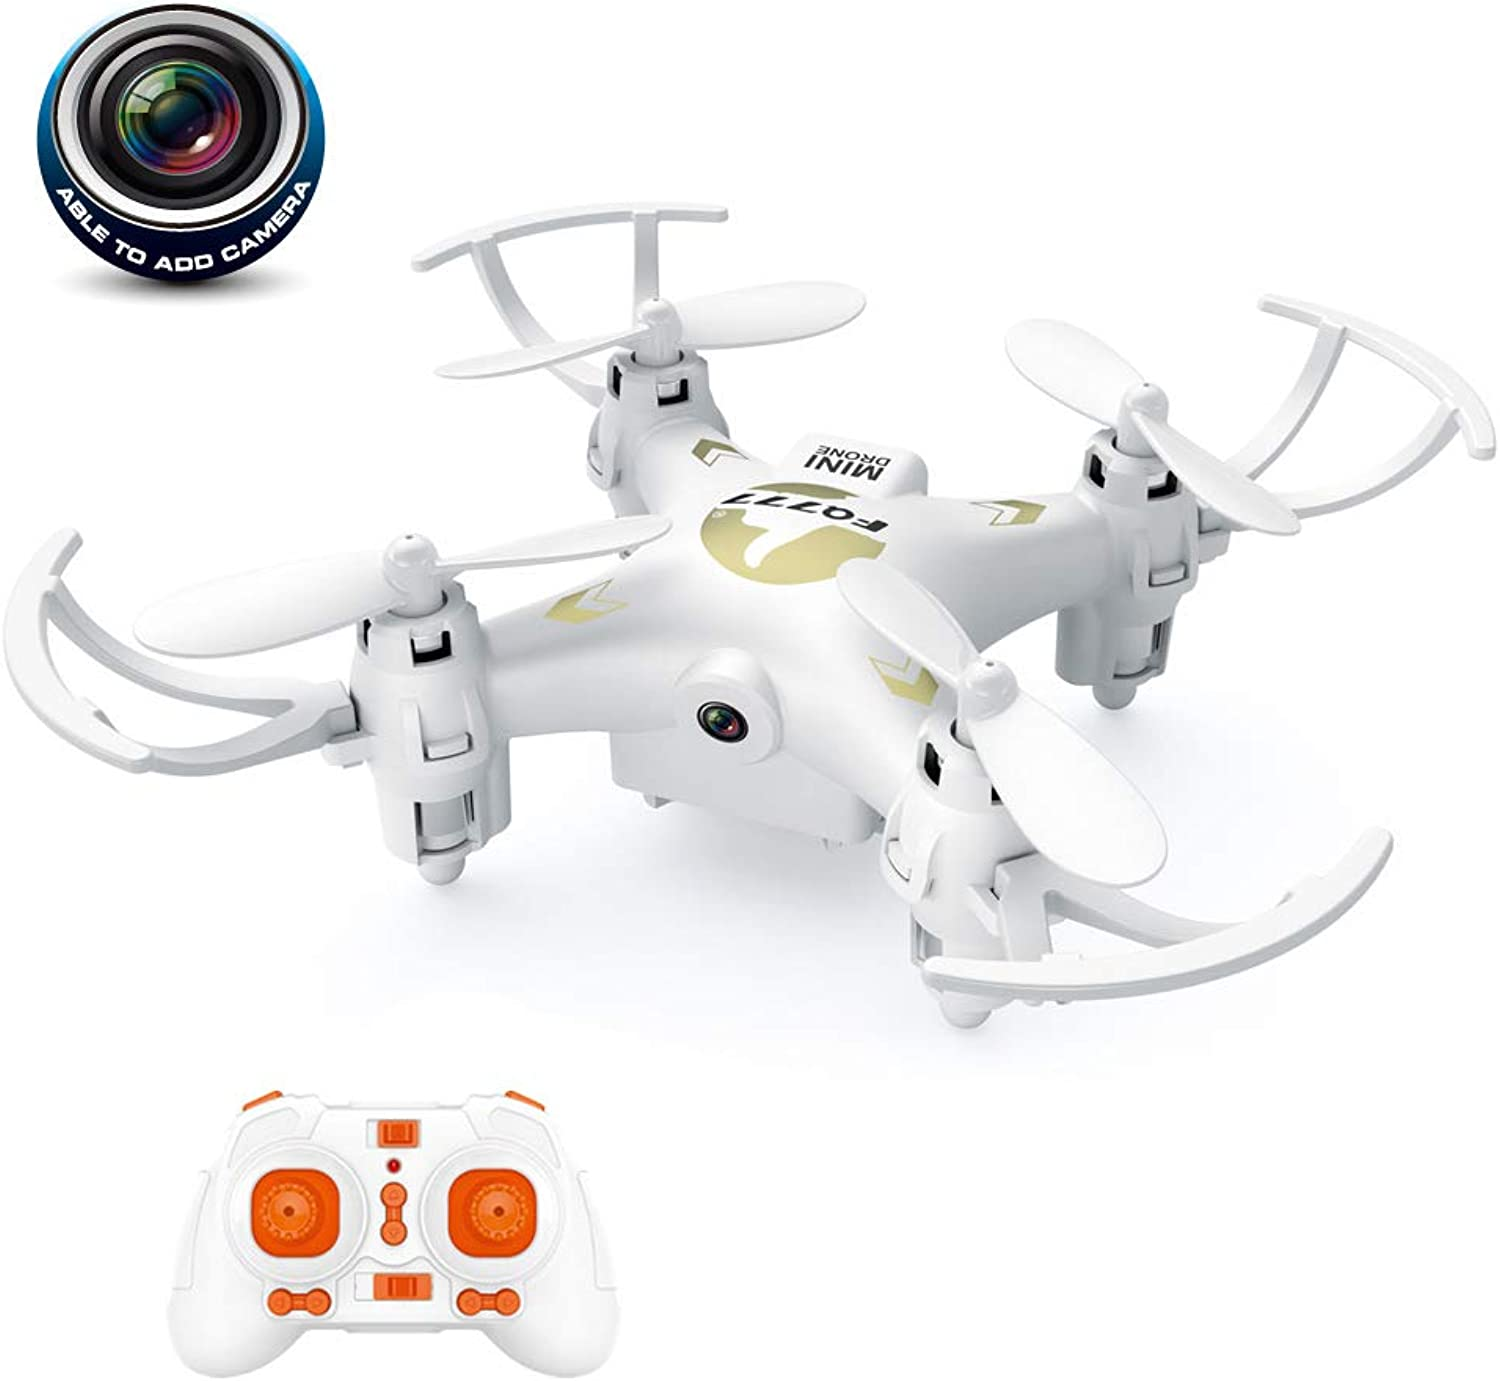 SLONG Drone Aerial Photography Mini Aircraft BuiltIn SixAxis Gyroscope Remote Control Aircraft Model Toy